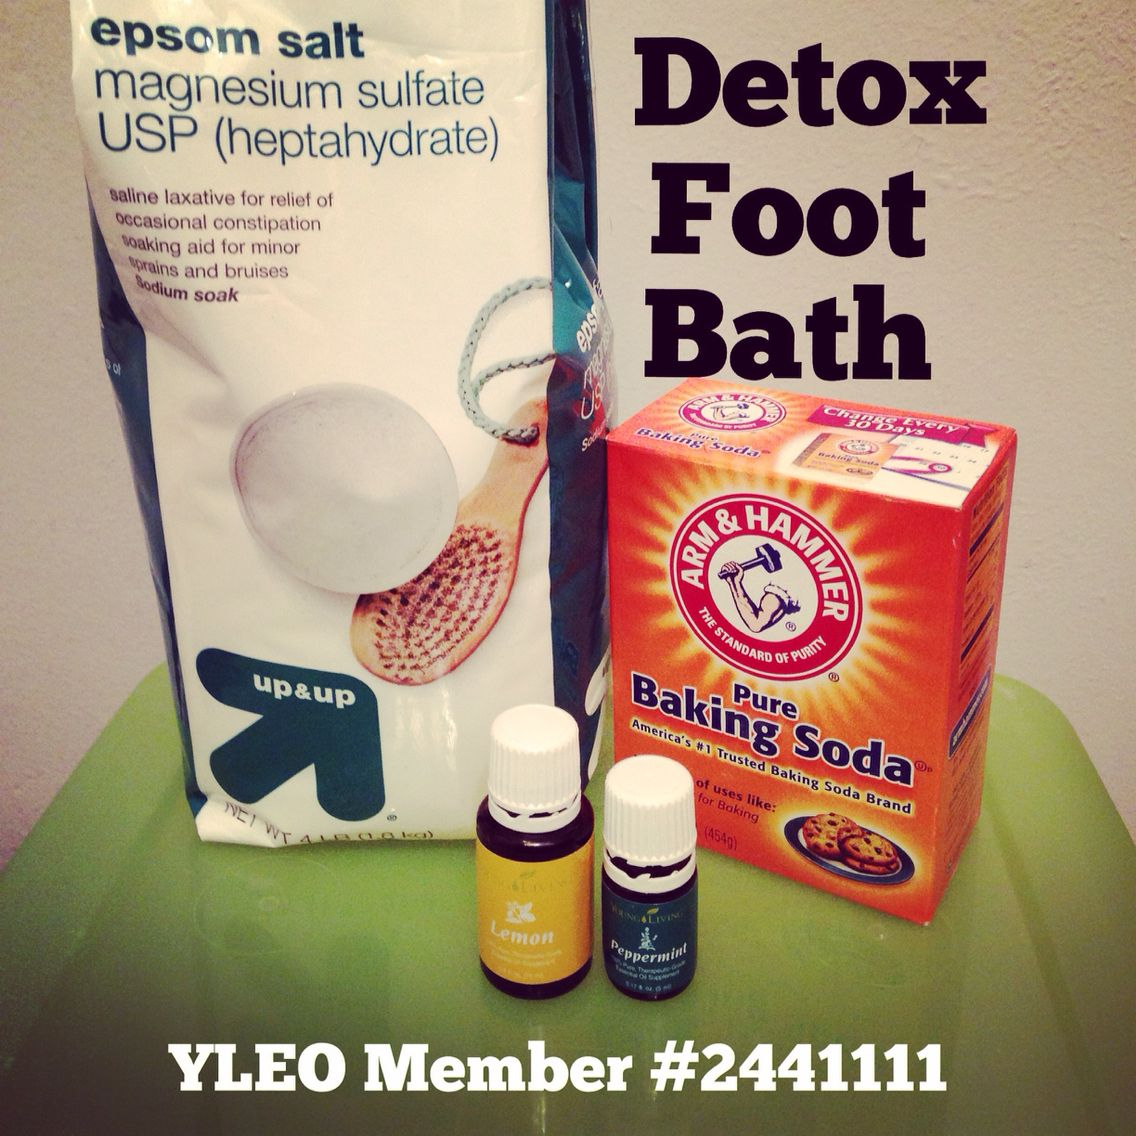 Detox Foot Bath with Young Living Oils. I use lemon & peppermint (2-4 drops each), 1 cup Epsom salts and 1/2 cup baking soda. Get the water as hot as you can handle. Then just relax and enjoy the aroma until the water cools. #detoxfootbath pulls toxins from the pores in your feet. Sign up with YL Essential Oils and use my member #2441111. Thanks!